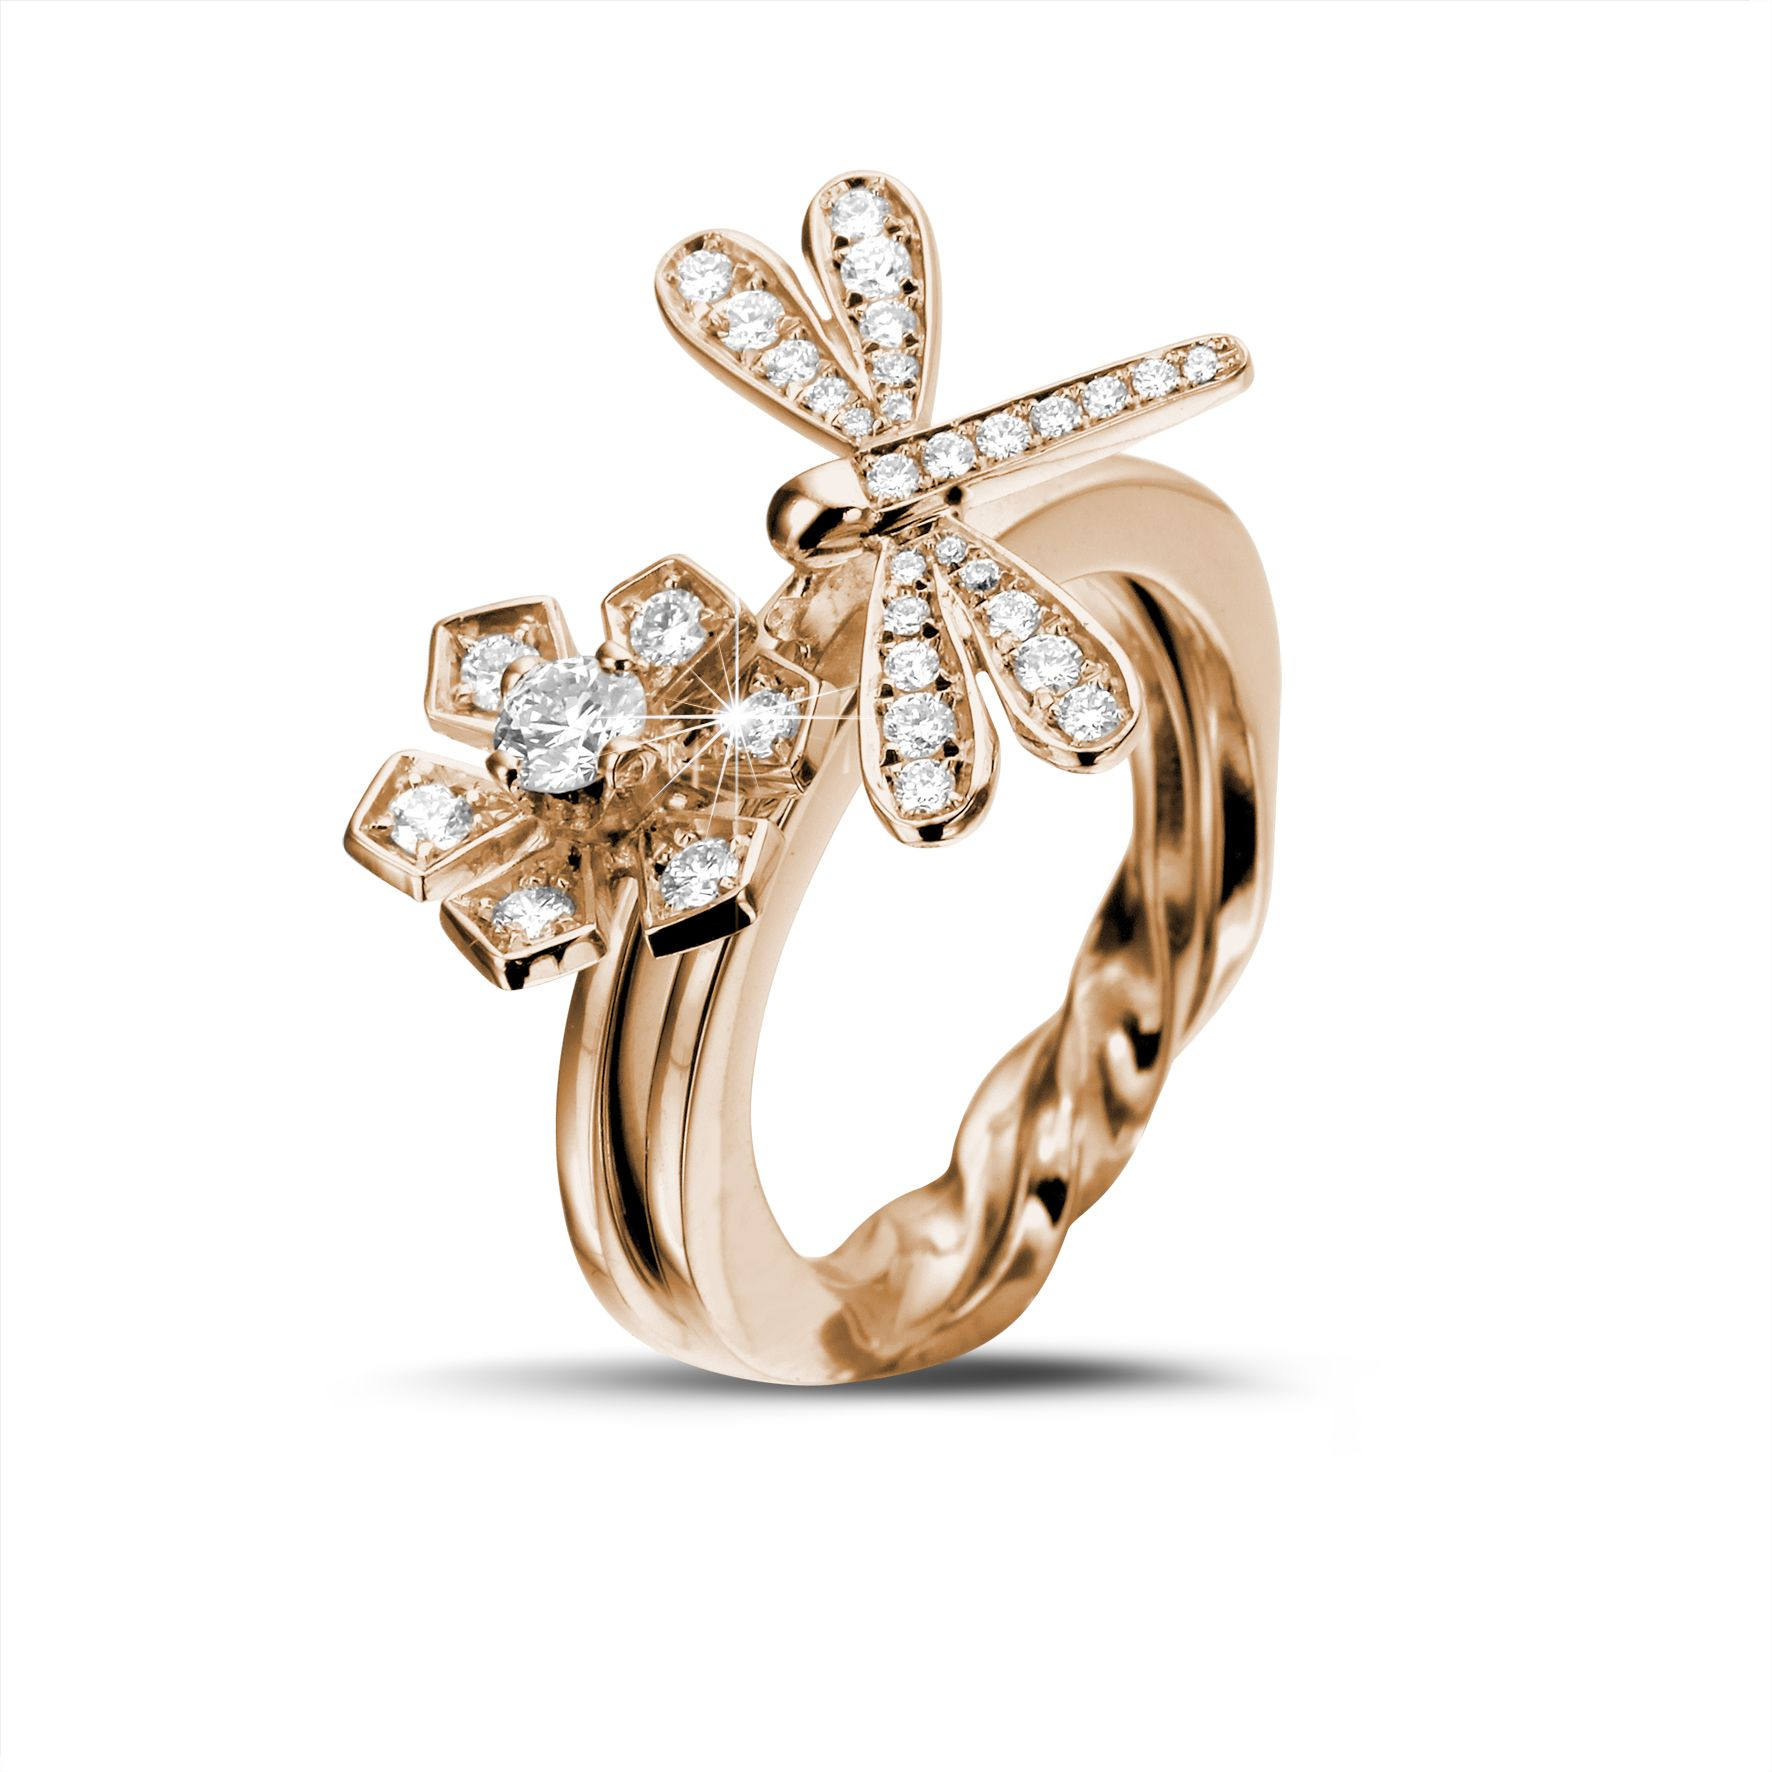 designers en com accessories rings dragonfly annoushka crown gb gold white harrods ring engagement